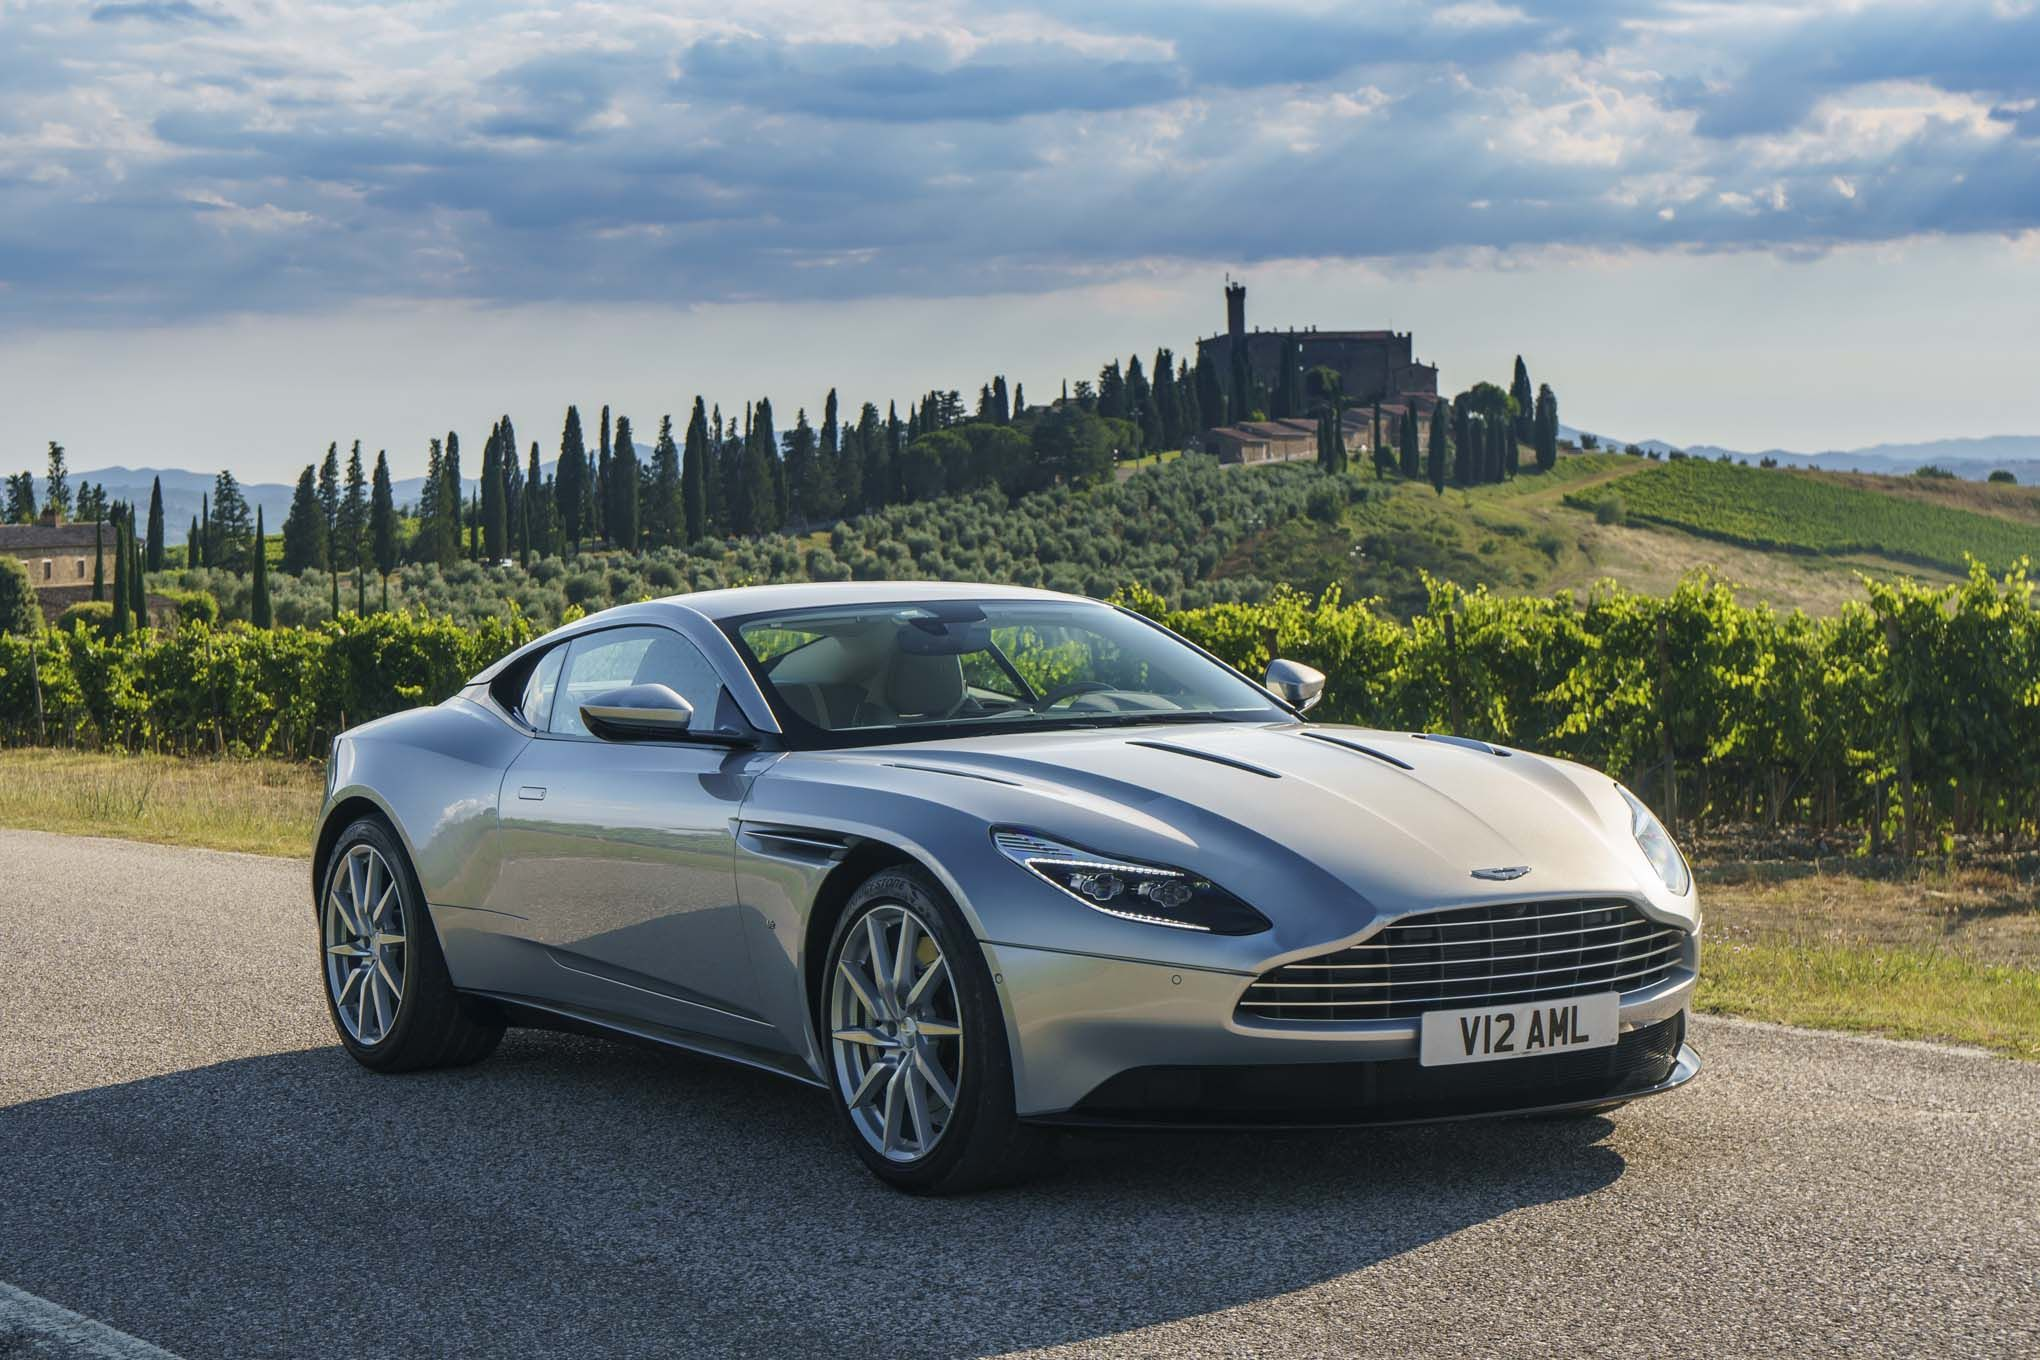 #Lease A 2017 Aston Martin DB11 With Premier Financial Services Today. # AstonMartin #